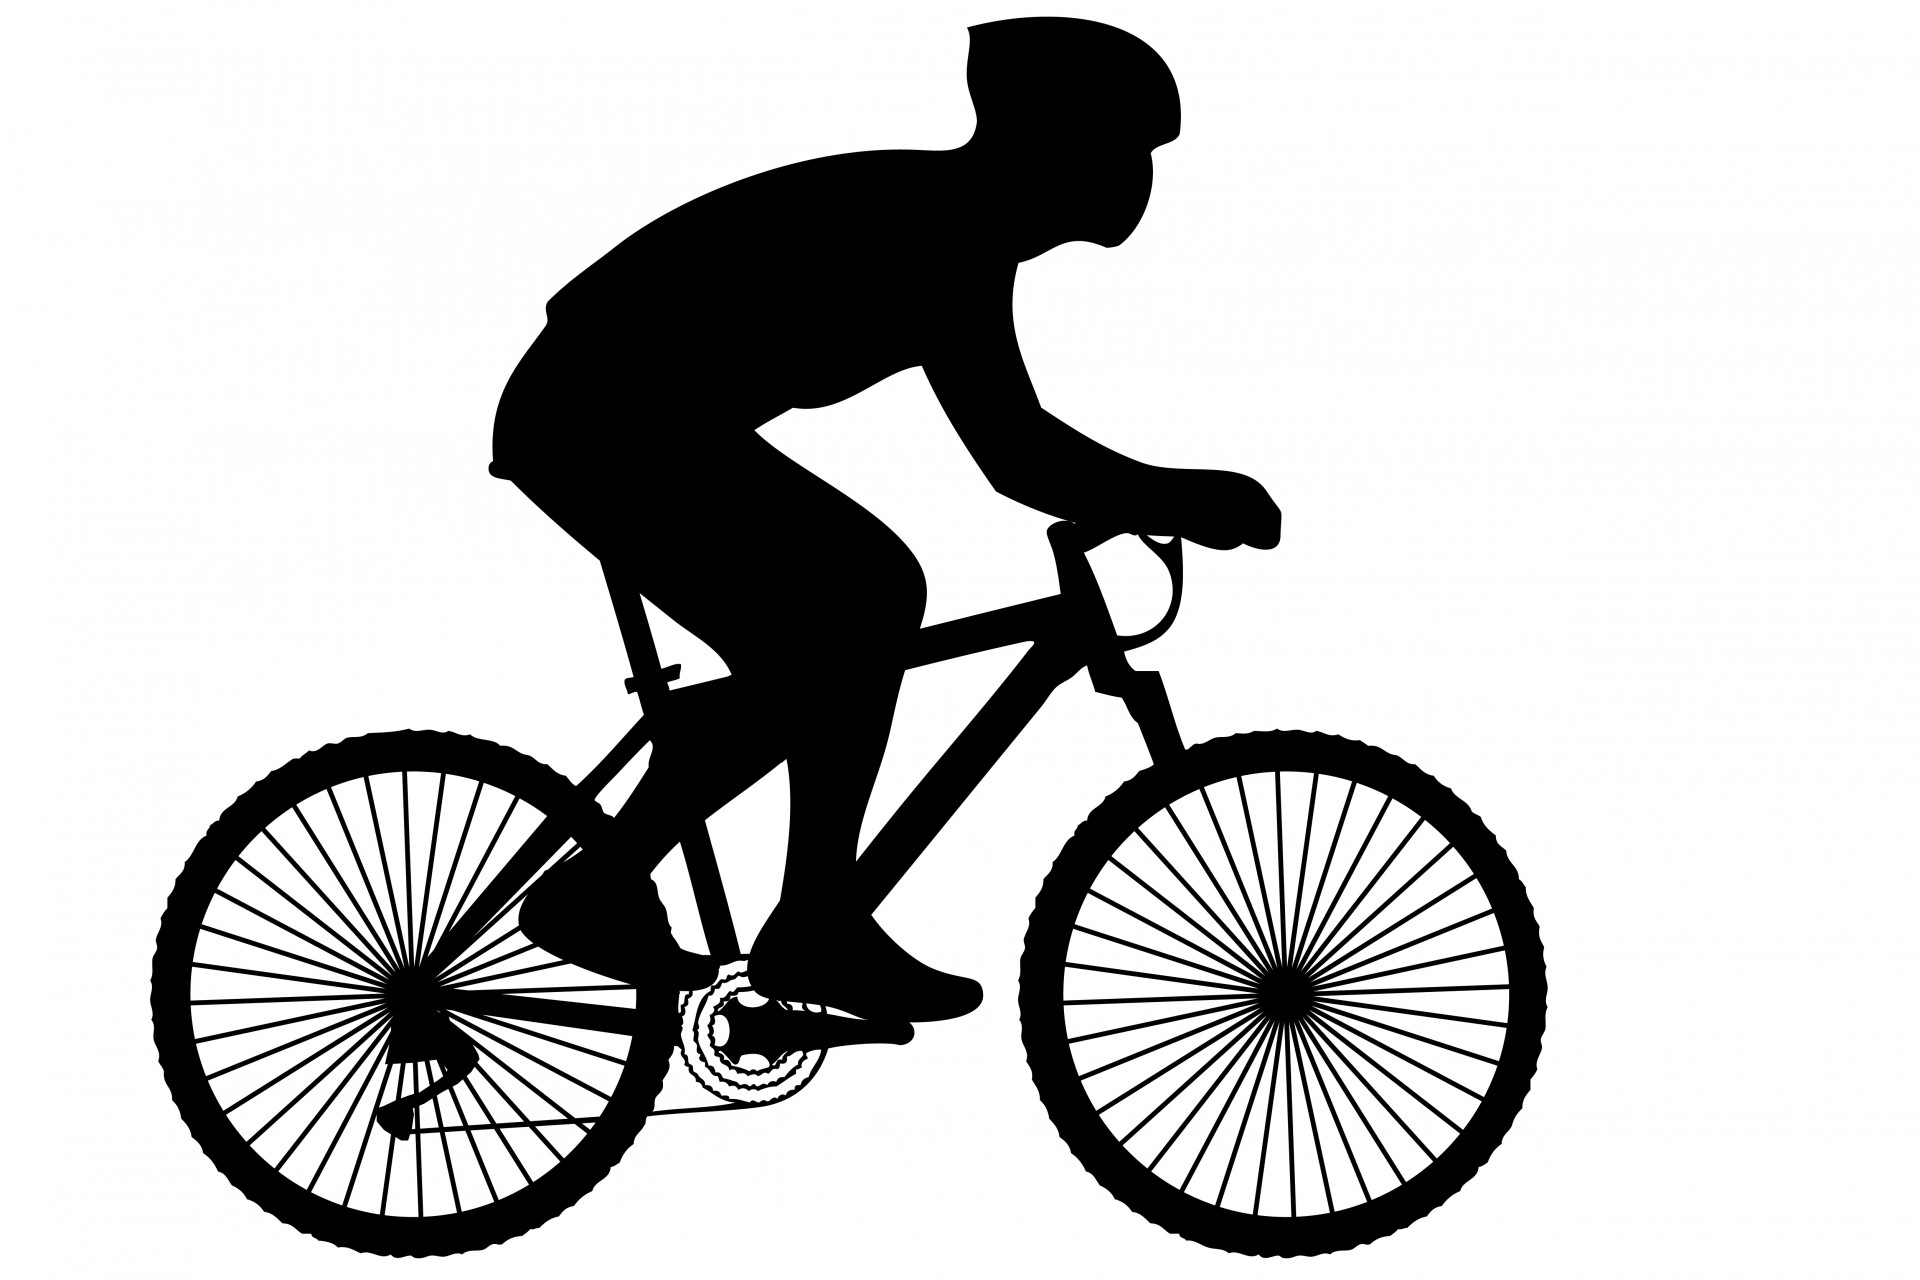 Cycling clipart. Cyclist black silhouette free